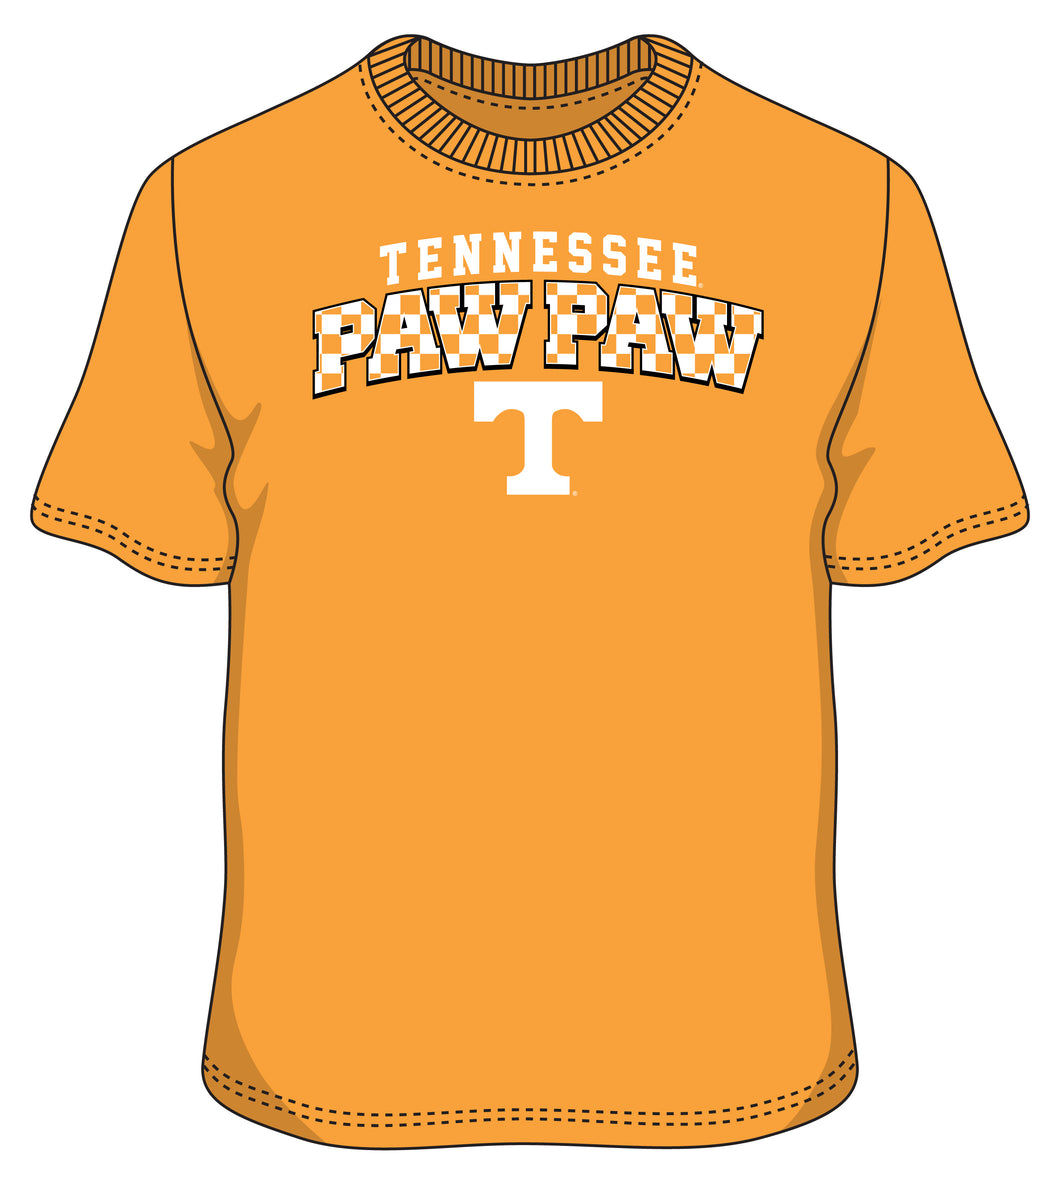 S/S TN Paw Paw Checkered Orange Tee